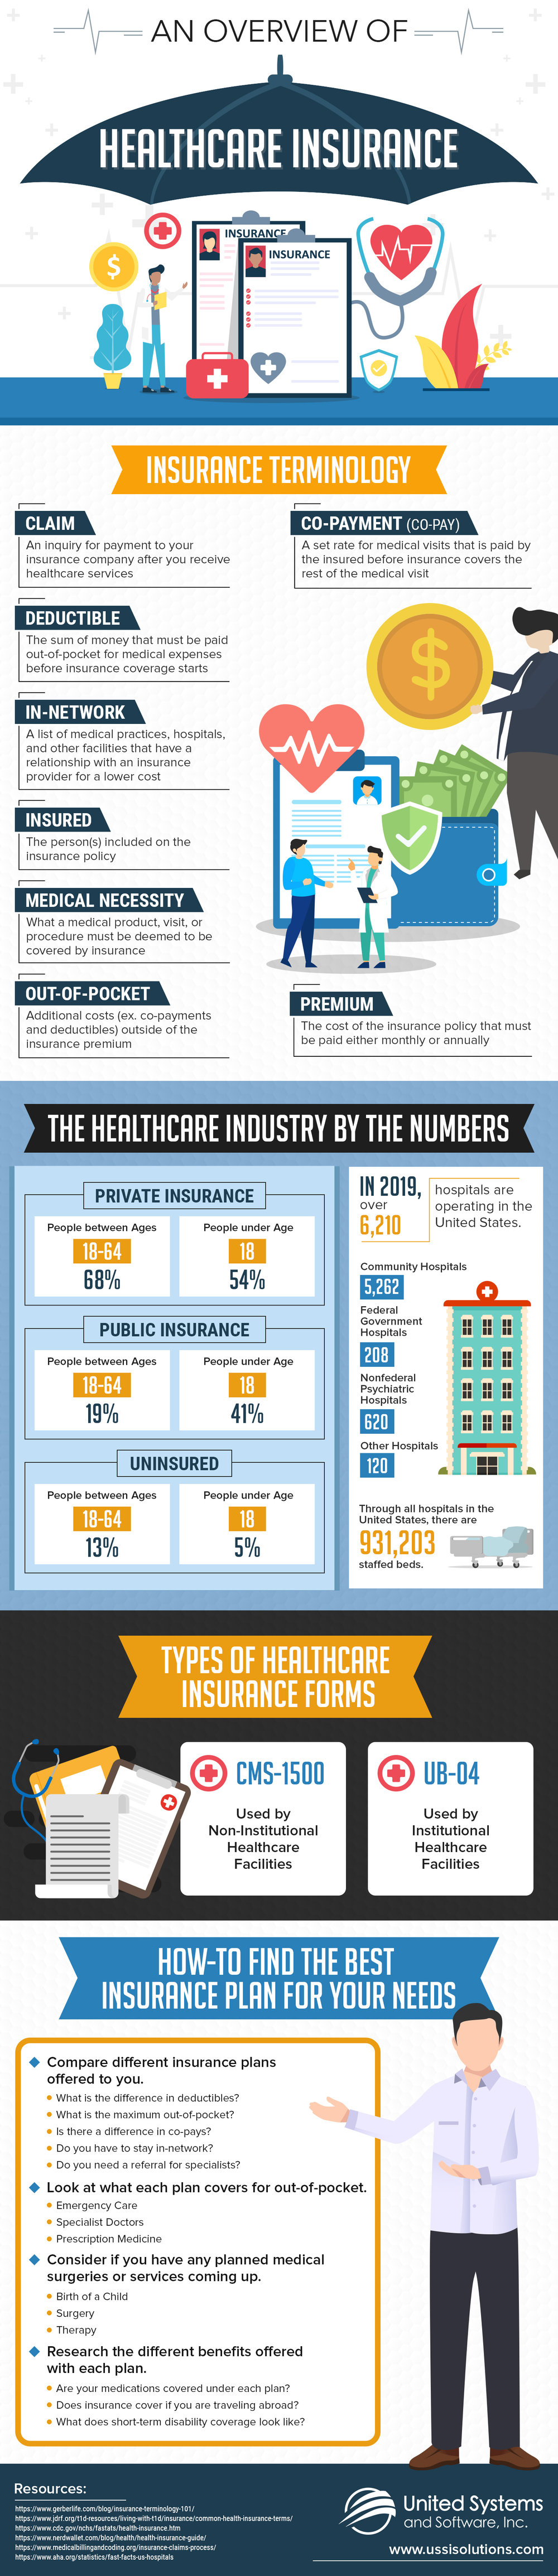 Understanding Healthcare Insurance Frameworks and Terminology - Infographic